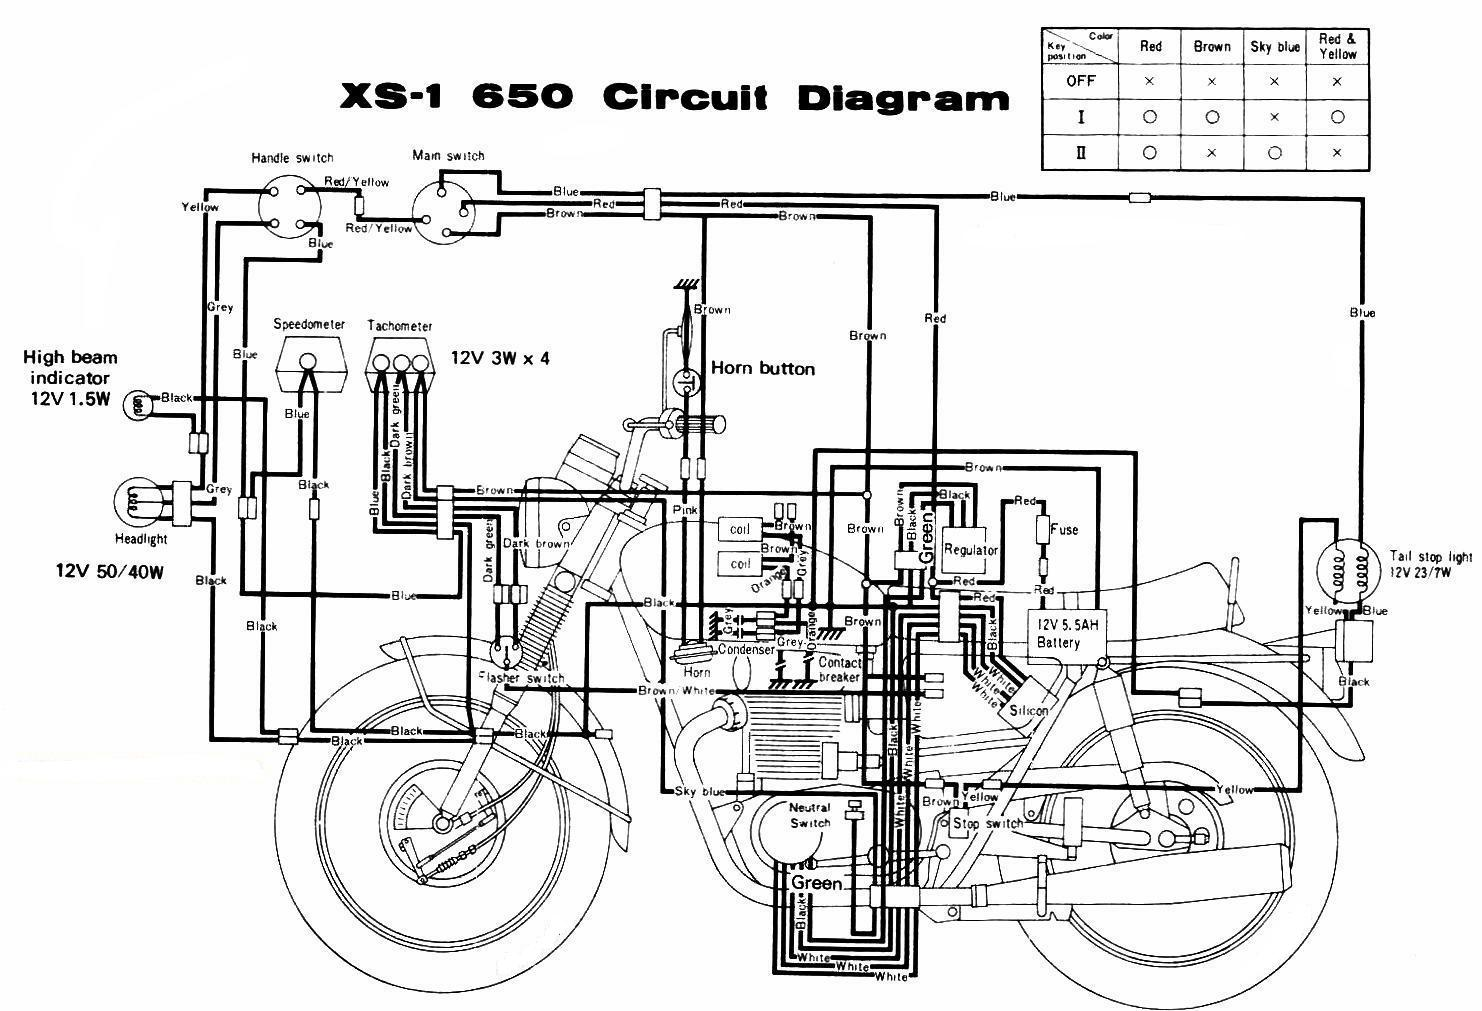 Wiring Diagrams 1997 Bmw 650 Diagram 1970 Xs1 Page 1